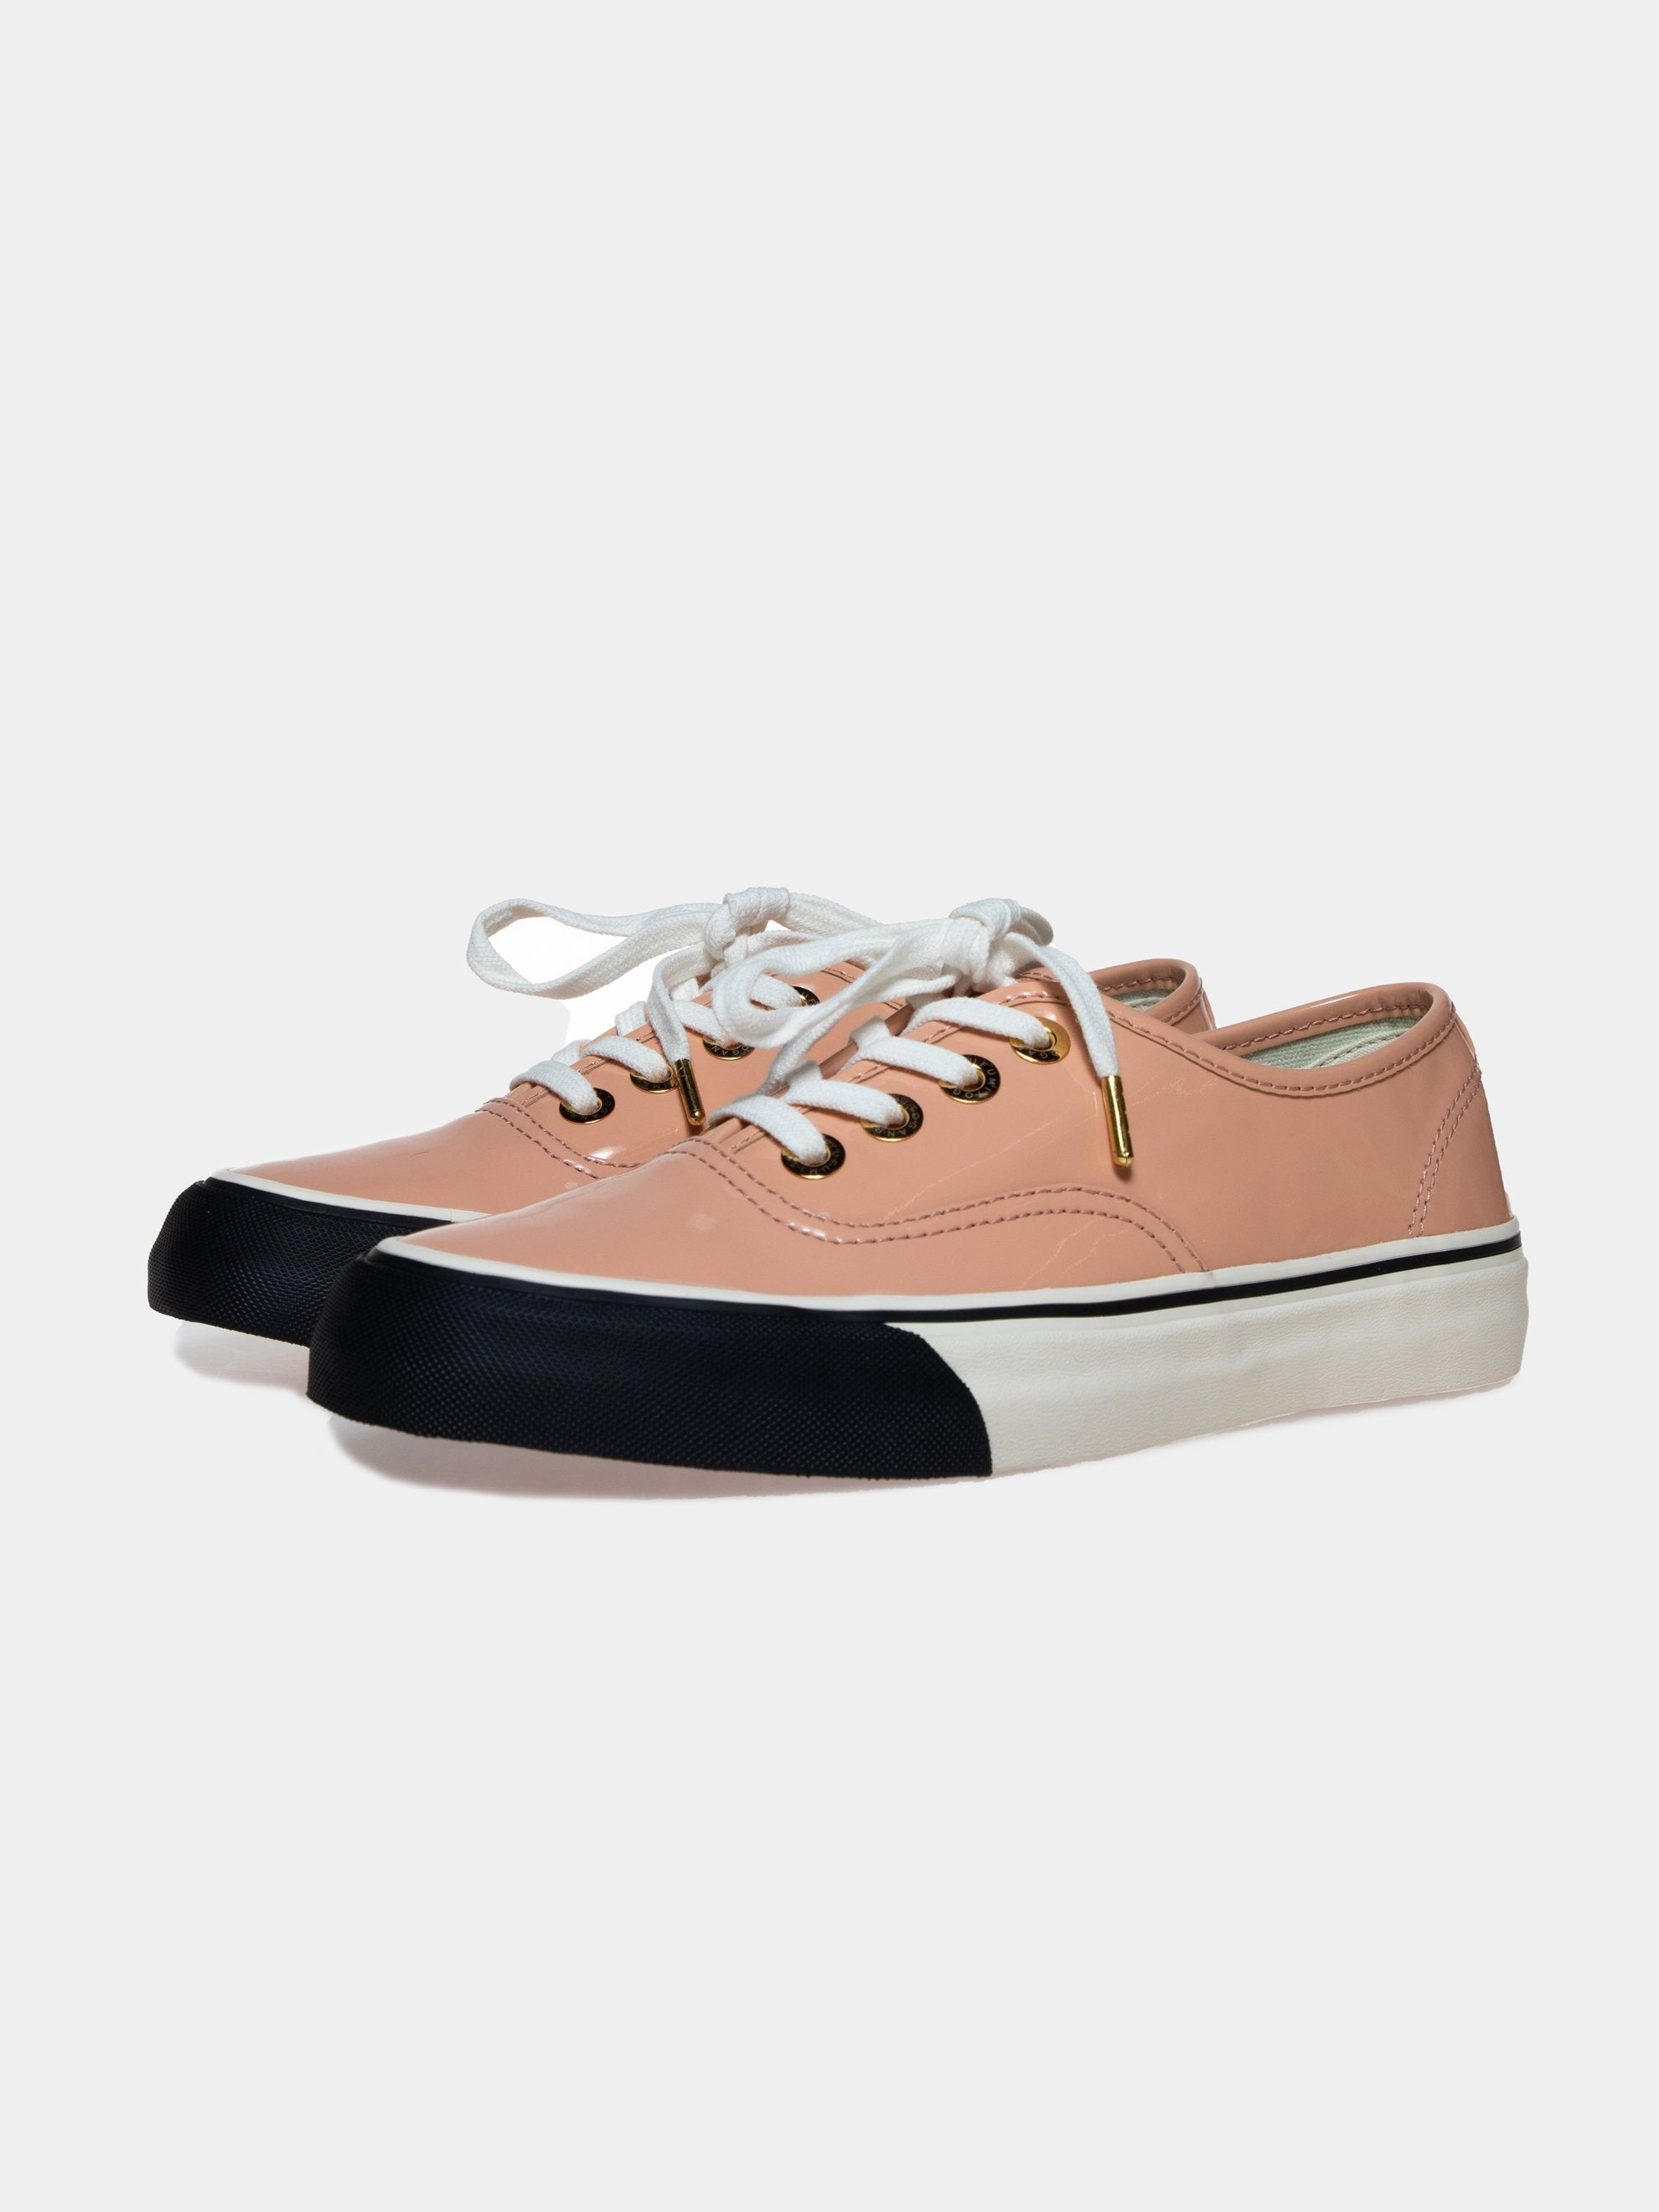 Pink/Beige Leather Skate Sneakers 2